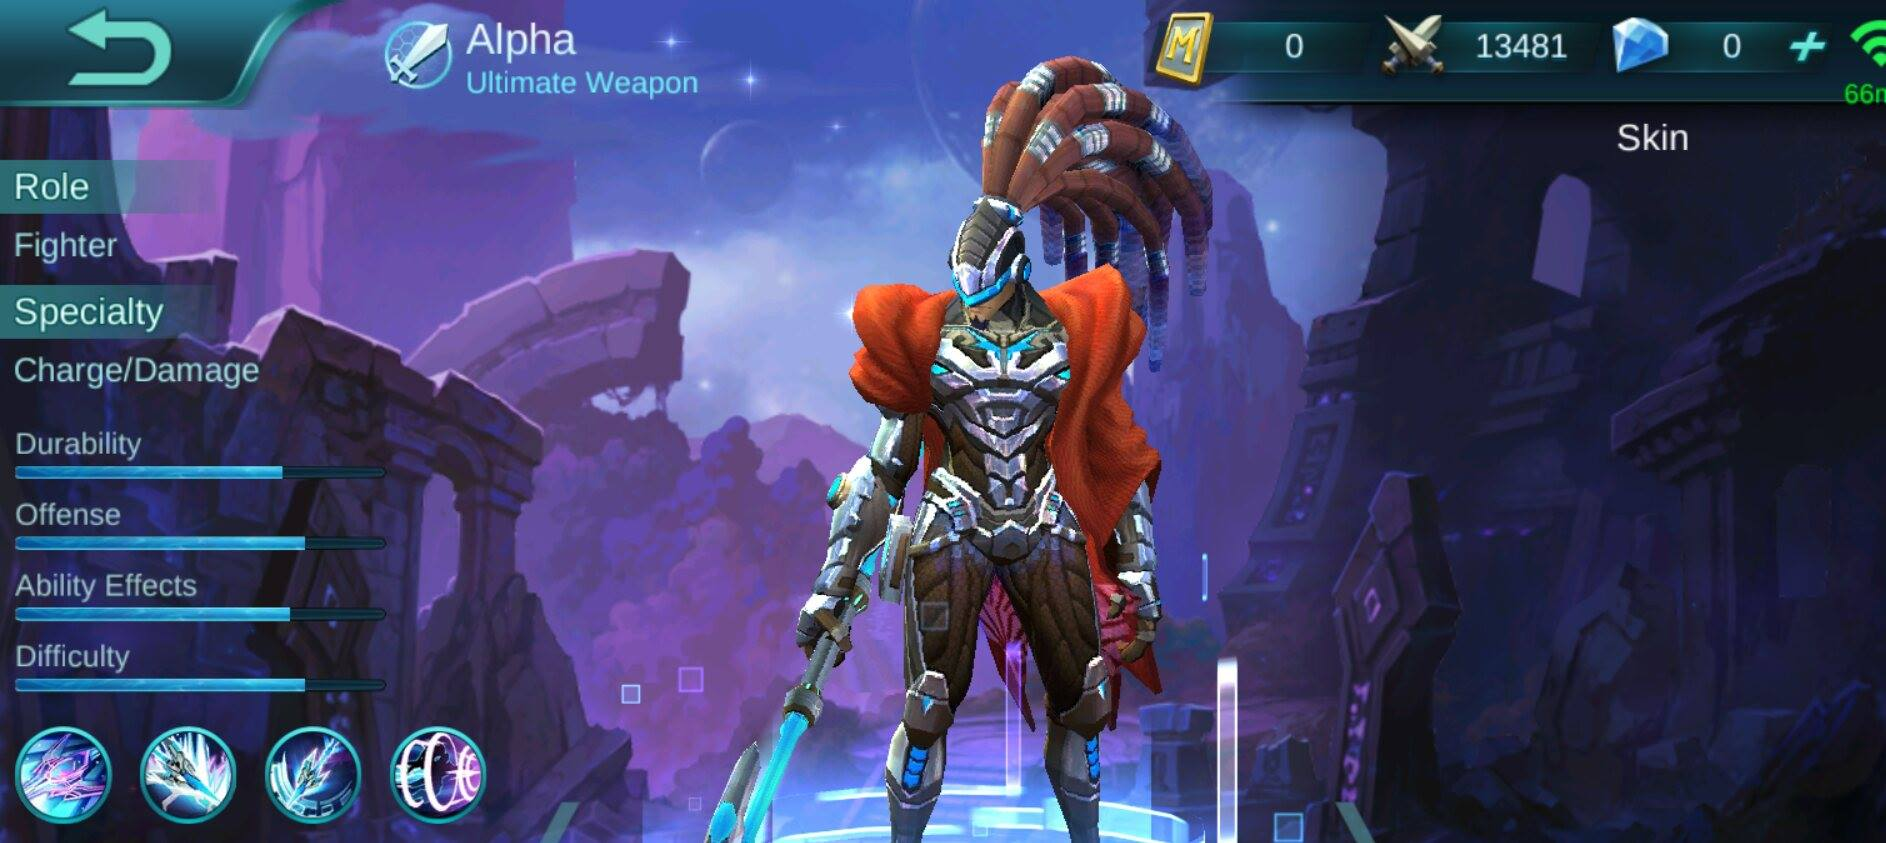 Photo of Mobile Legends: Alpha Build Guide